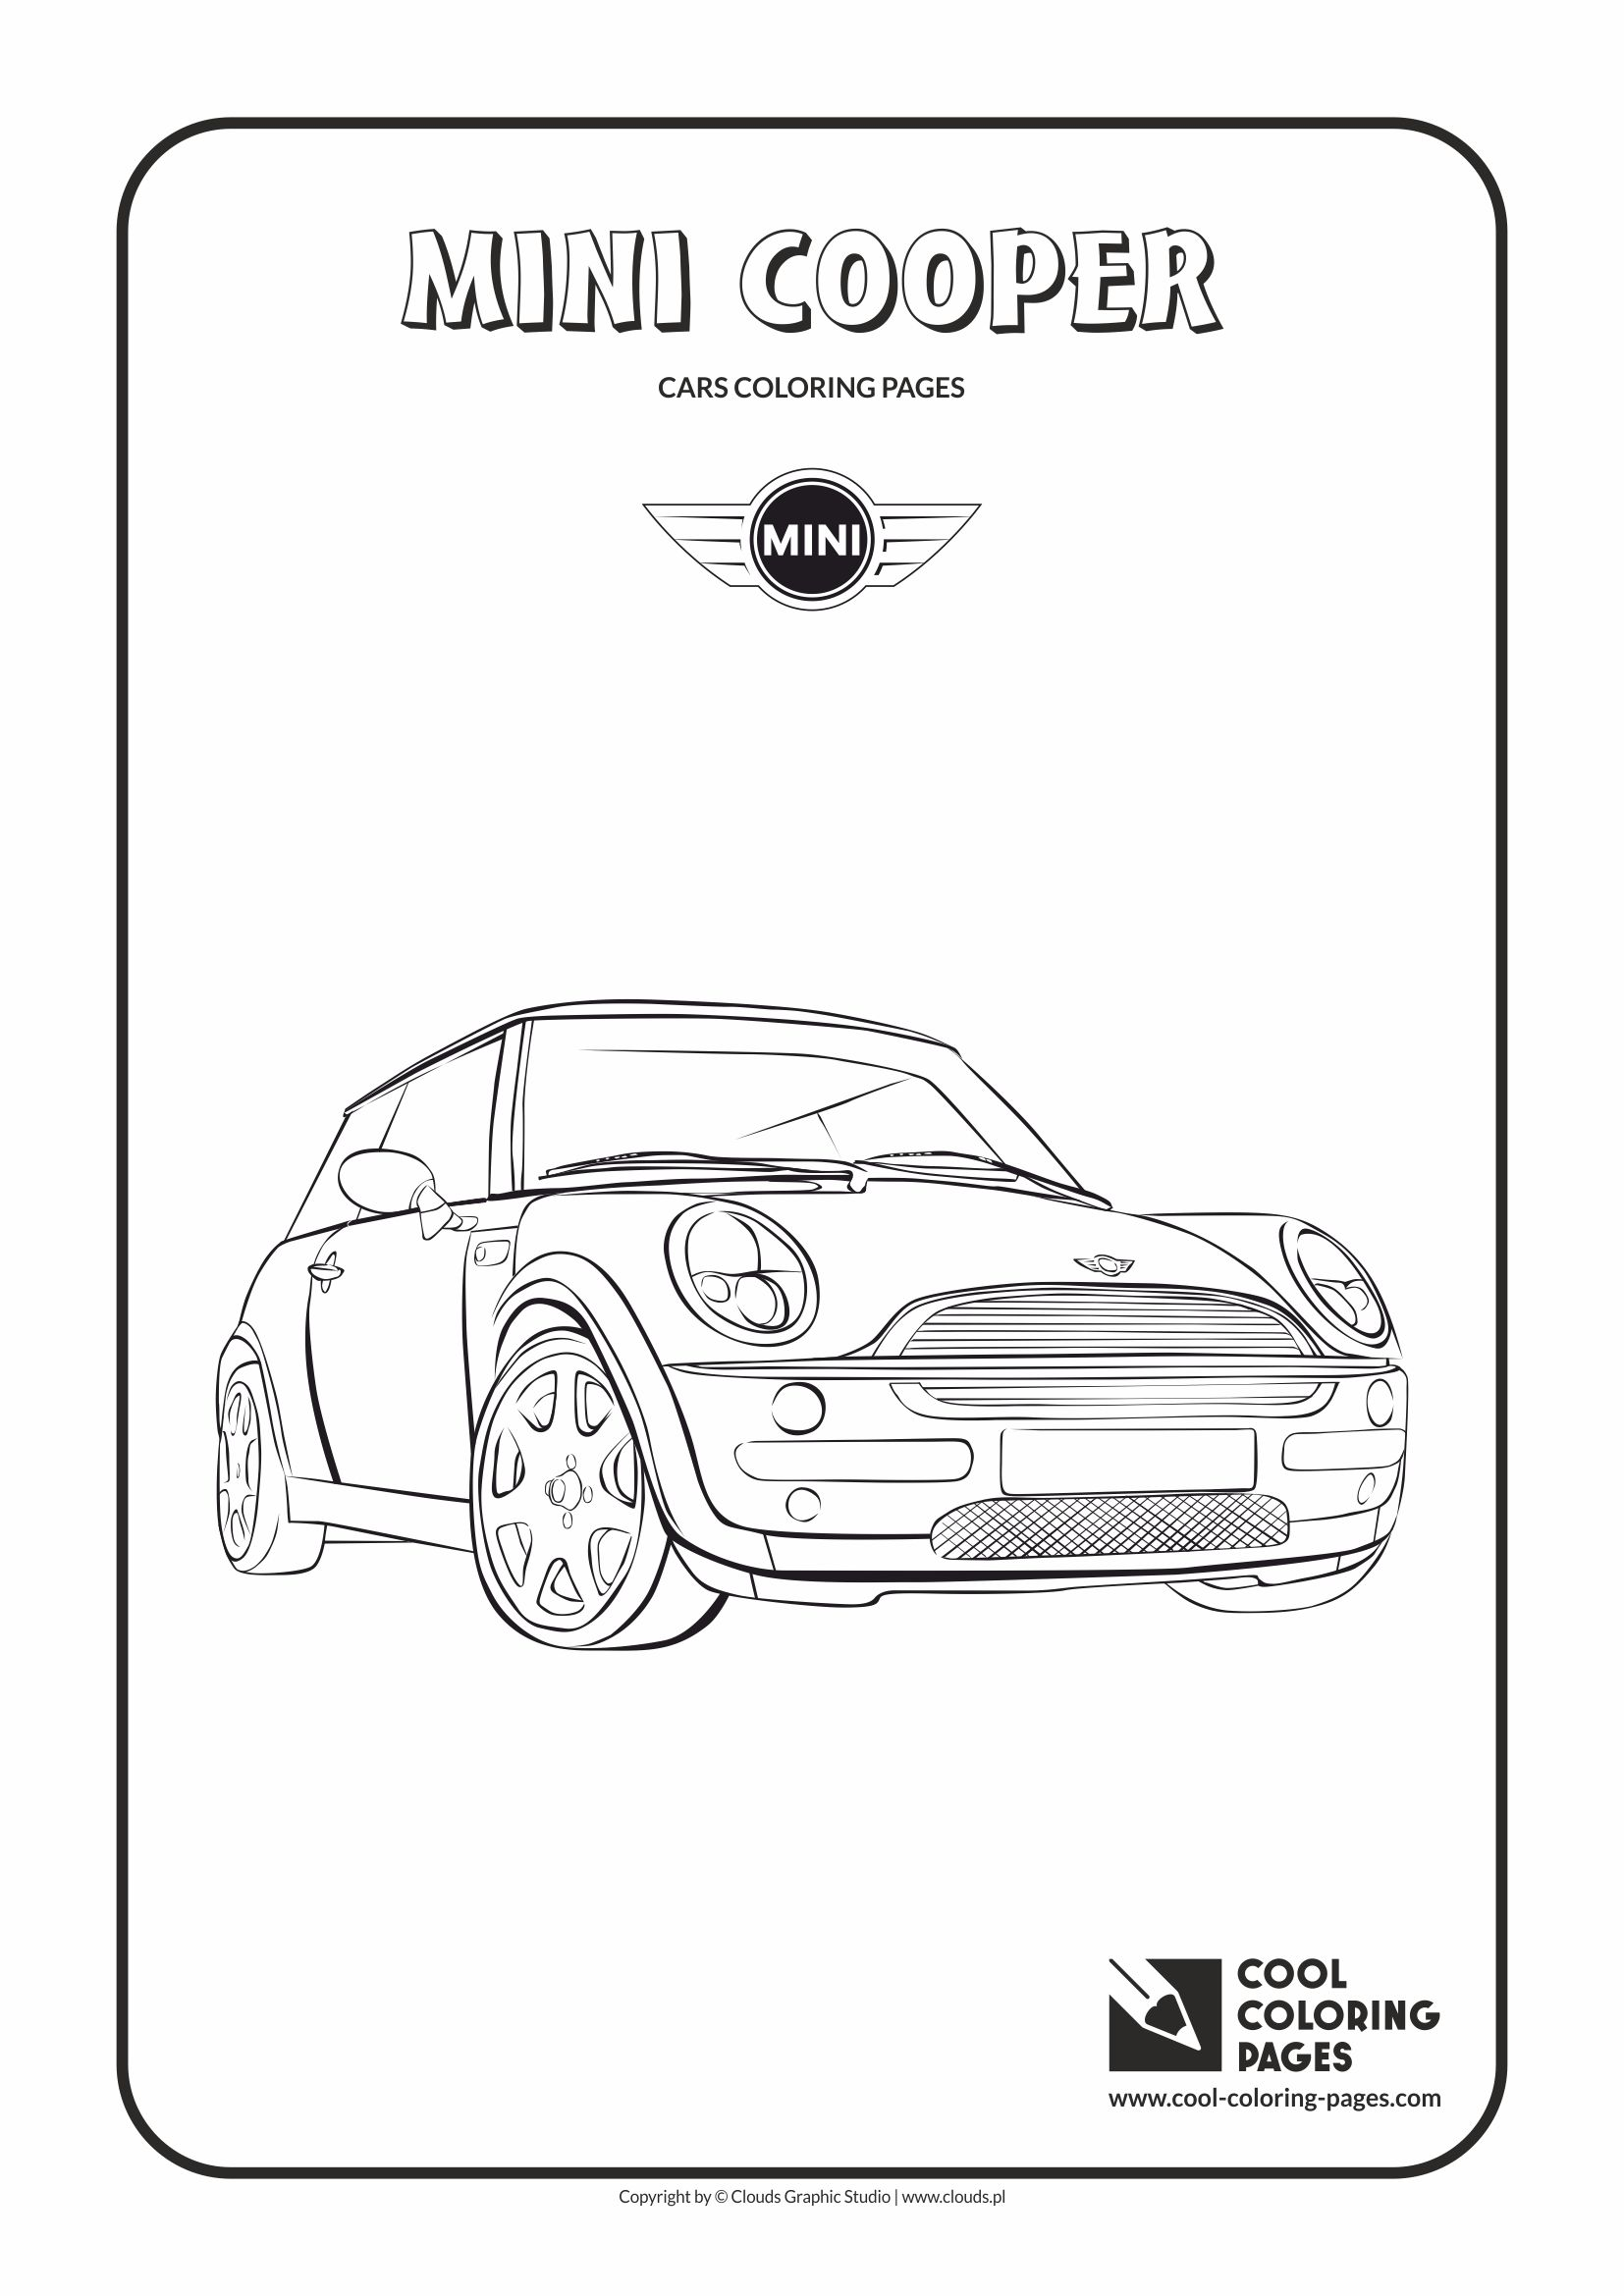 cool coloring pages vehicles mini cooper coloring page with mini cooper